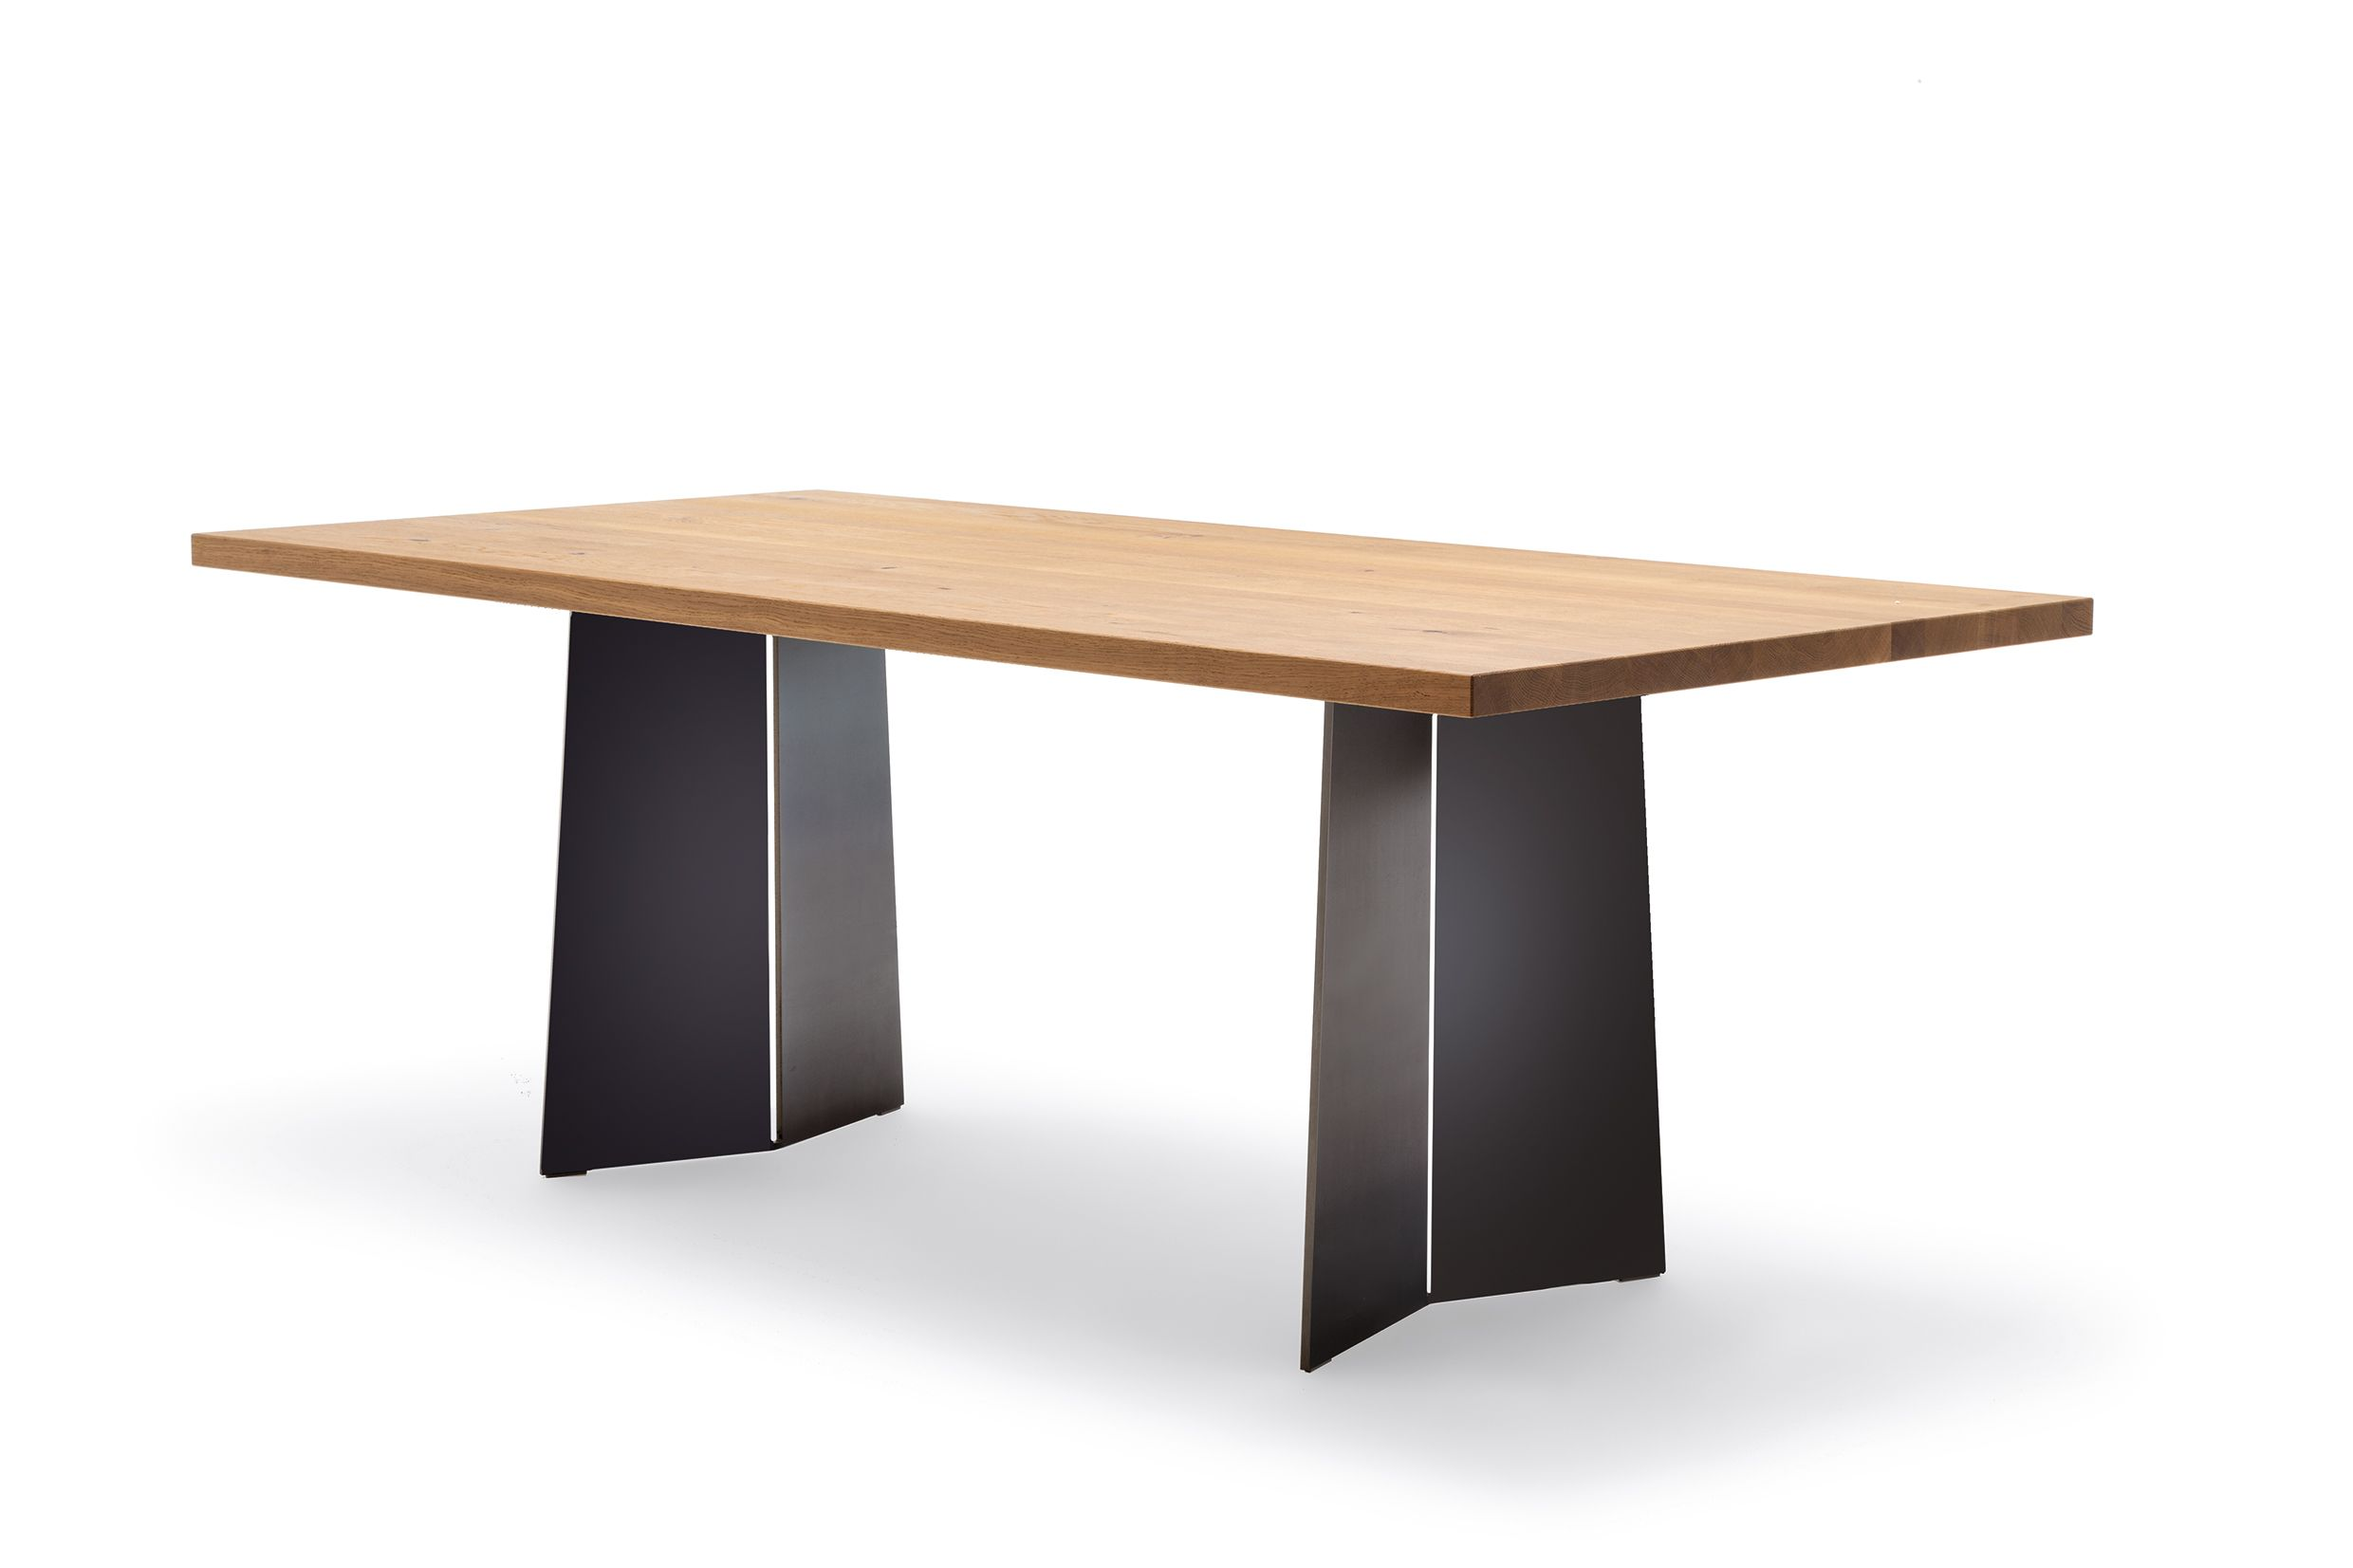 Rolf Benz Couchtisch 8440 Rolf Benz 969 Dining Table With Solid Oak Top And Steel Base